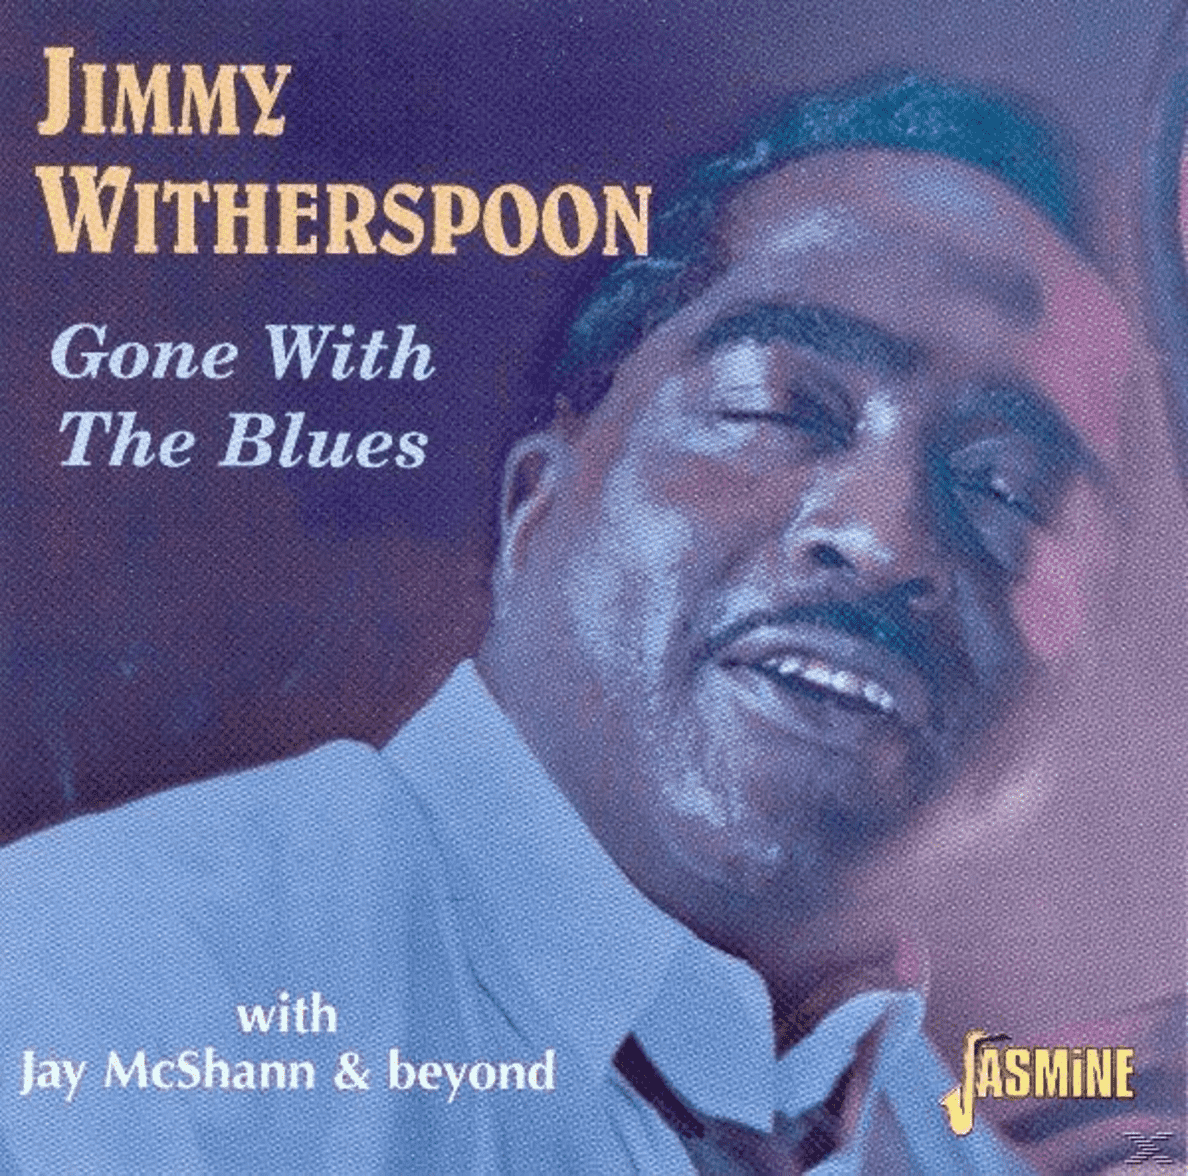 Jimmy Witherspoon - Gone With The Blues (With Jay McShann & Beyond) - (CD)